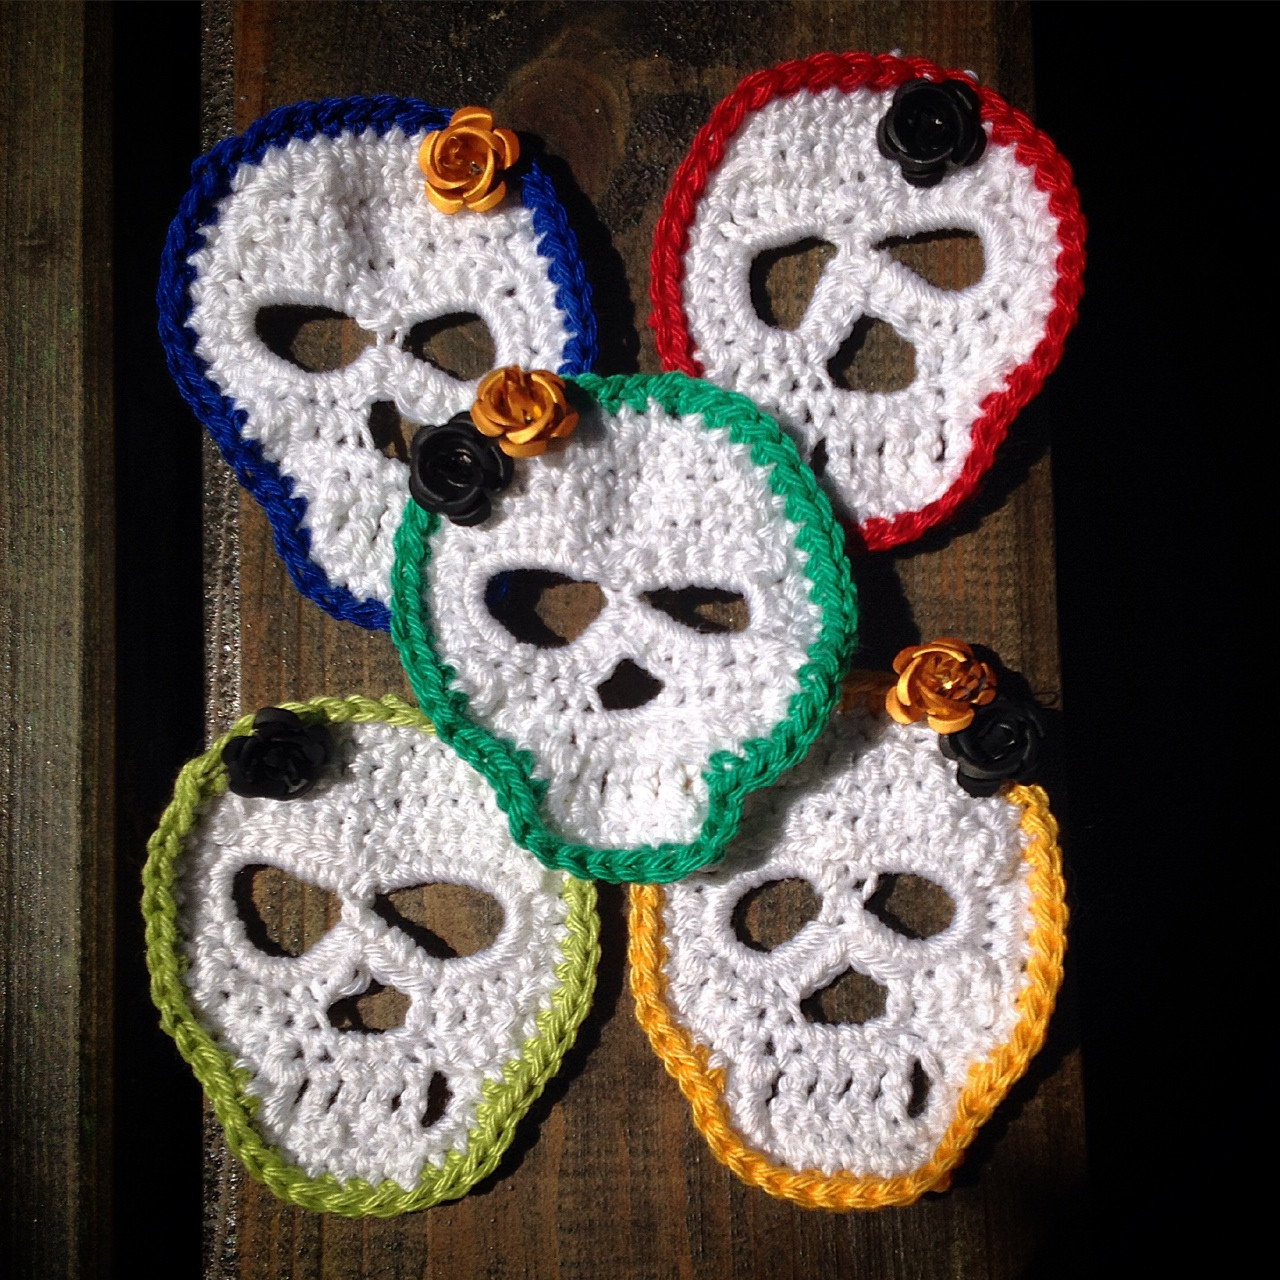 Unique Crochet Sugar Skull Garland Crochet Sugar Skull Of Incredible 47 Pictures Crochet Sugar Skull